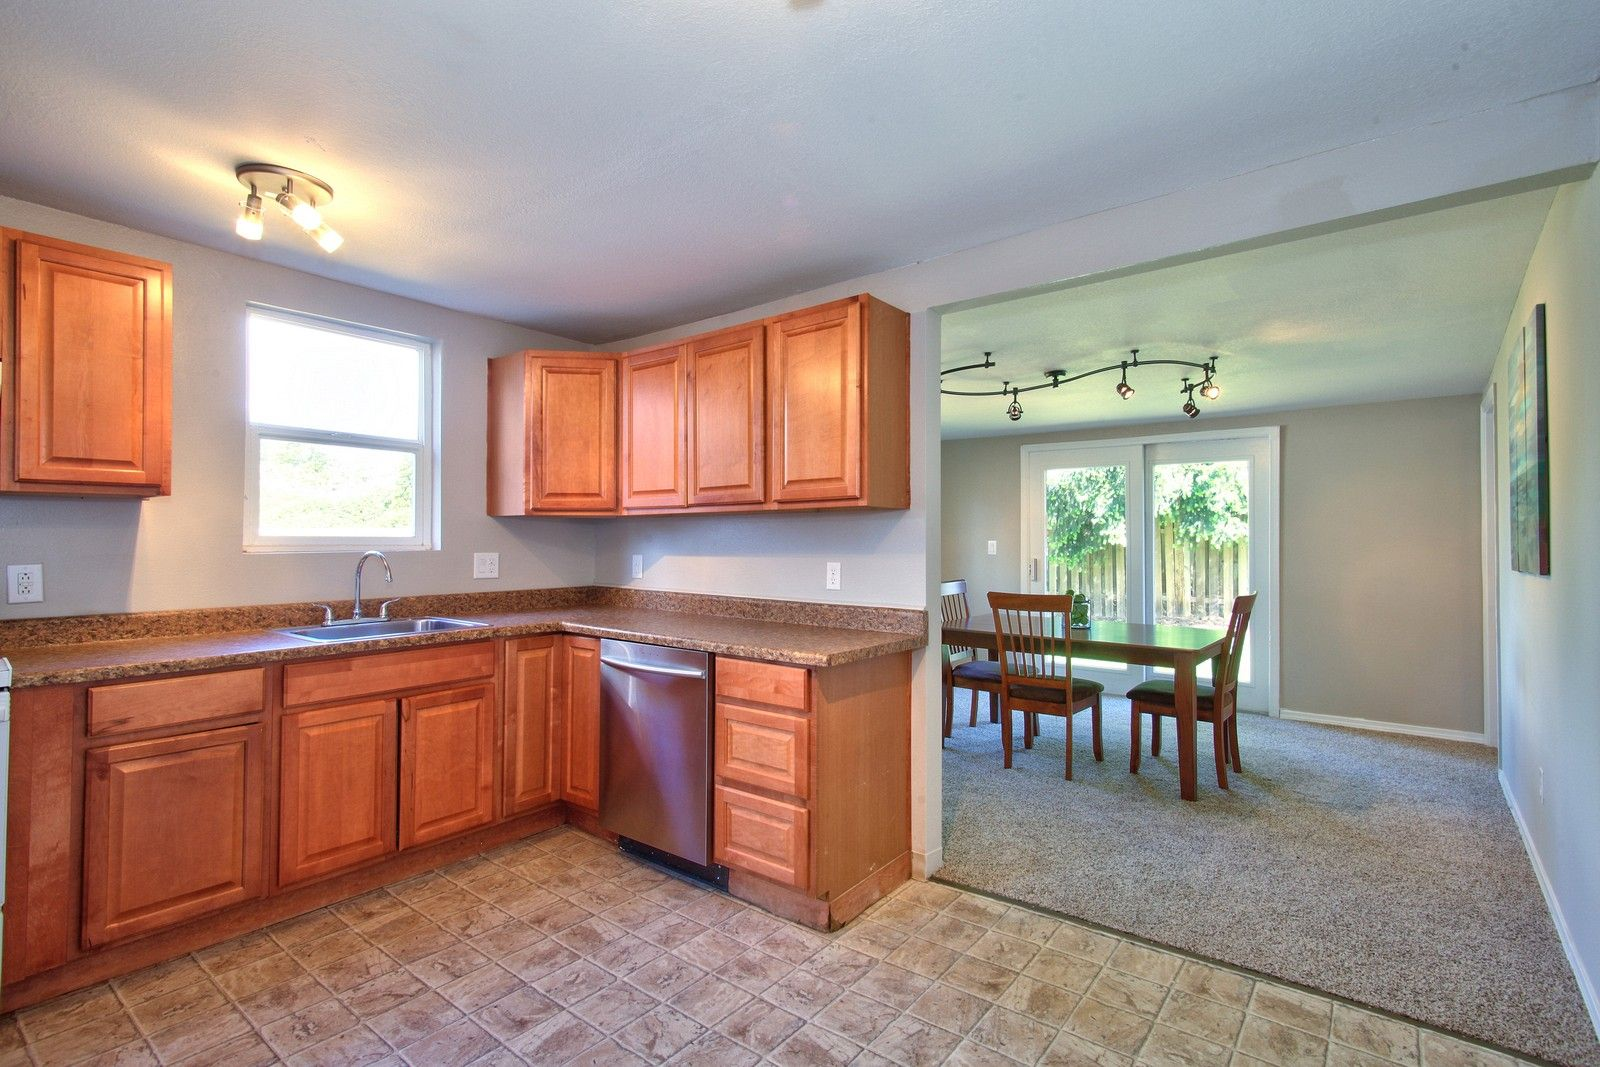 threebedroom home in the heart of St. Johns